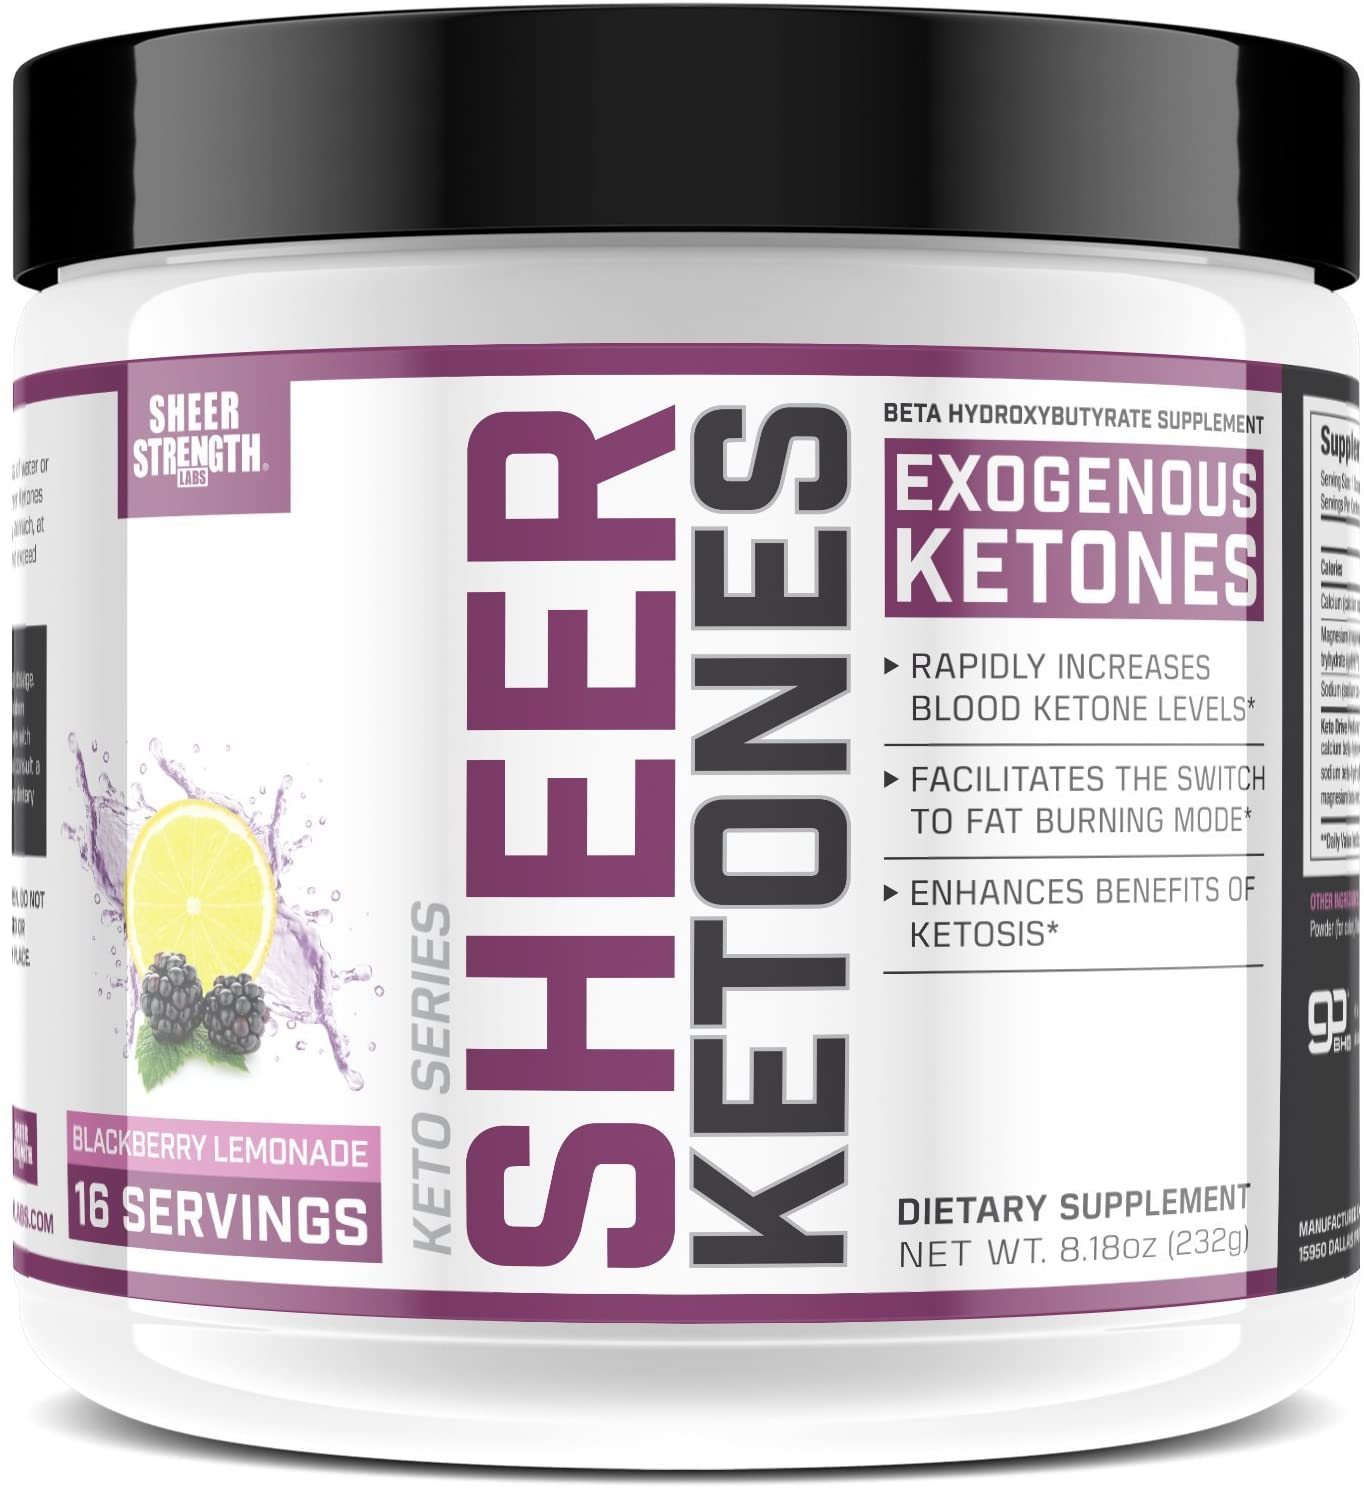 High Potency BHB Salts ~ Exogenous Ketones Formulated to Burn Fat, Boost Energy & Jumpstart Ketosis Fast | BlackBerry Lemonade Beta Hydroxybutyrates | Sheer Strength Labs, 8.11 oz - Packaging May Vary